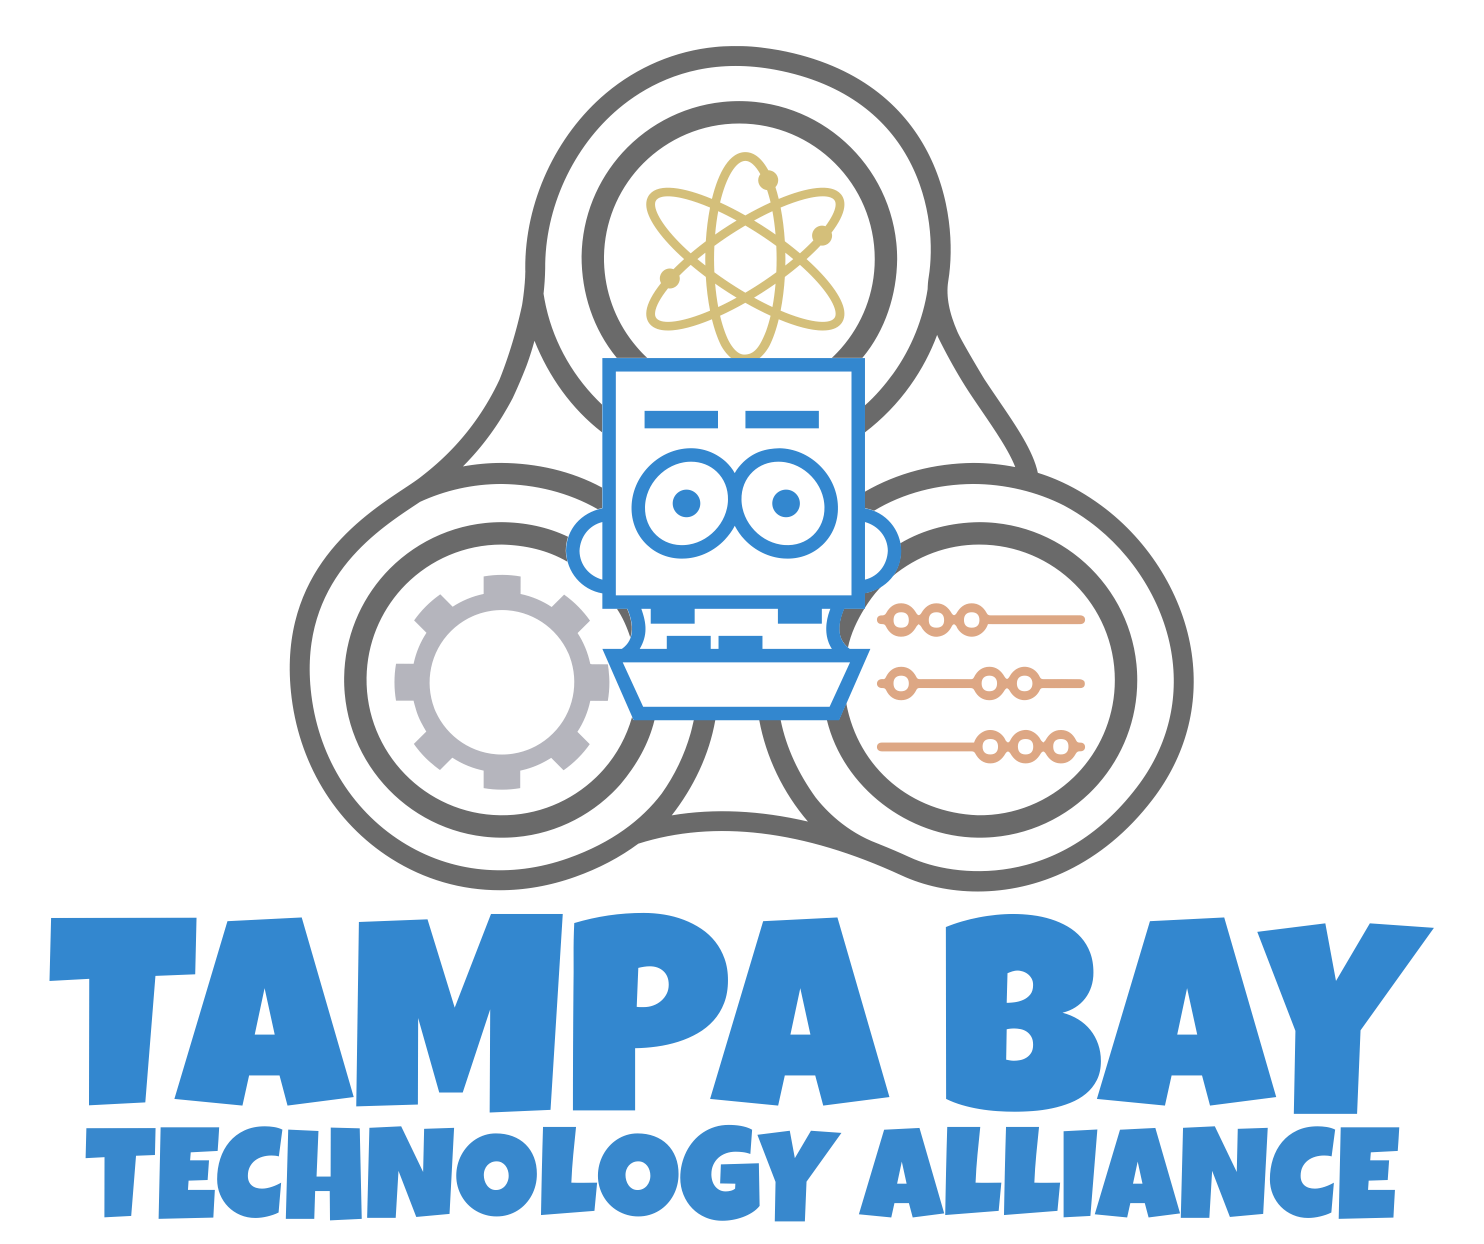 Tampa Bay Technology Alliance